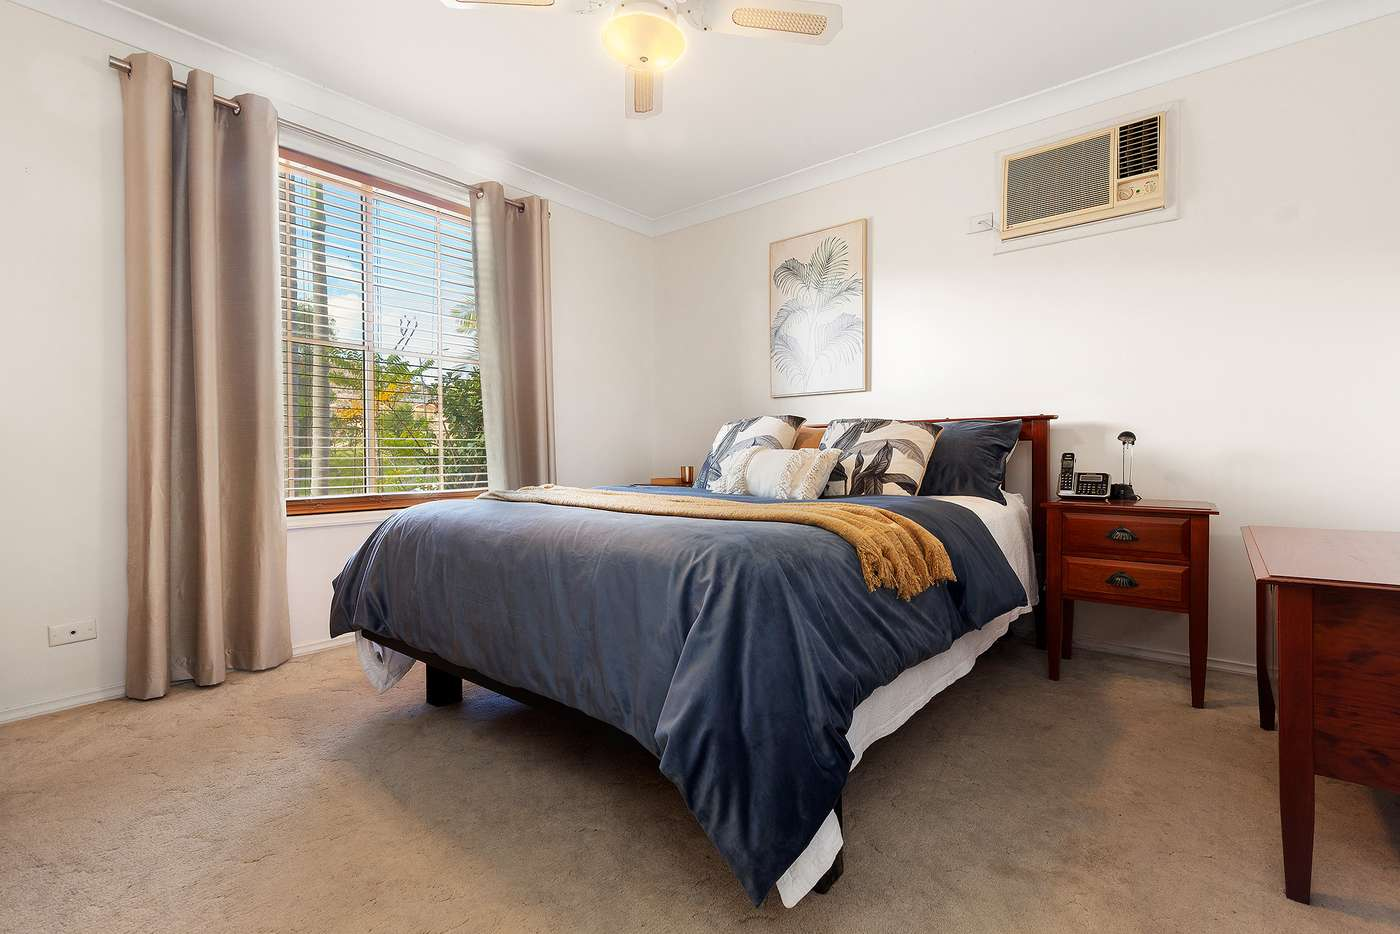 Sixth view of Homely house listing, 45 Spinnaker Ridge Way, Belmont NSW 2280